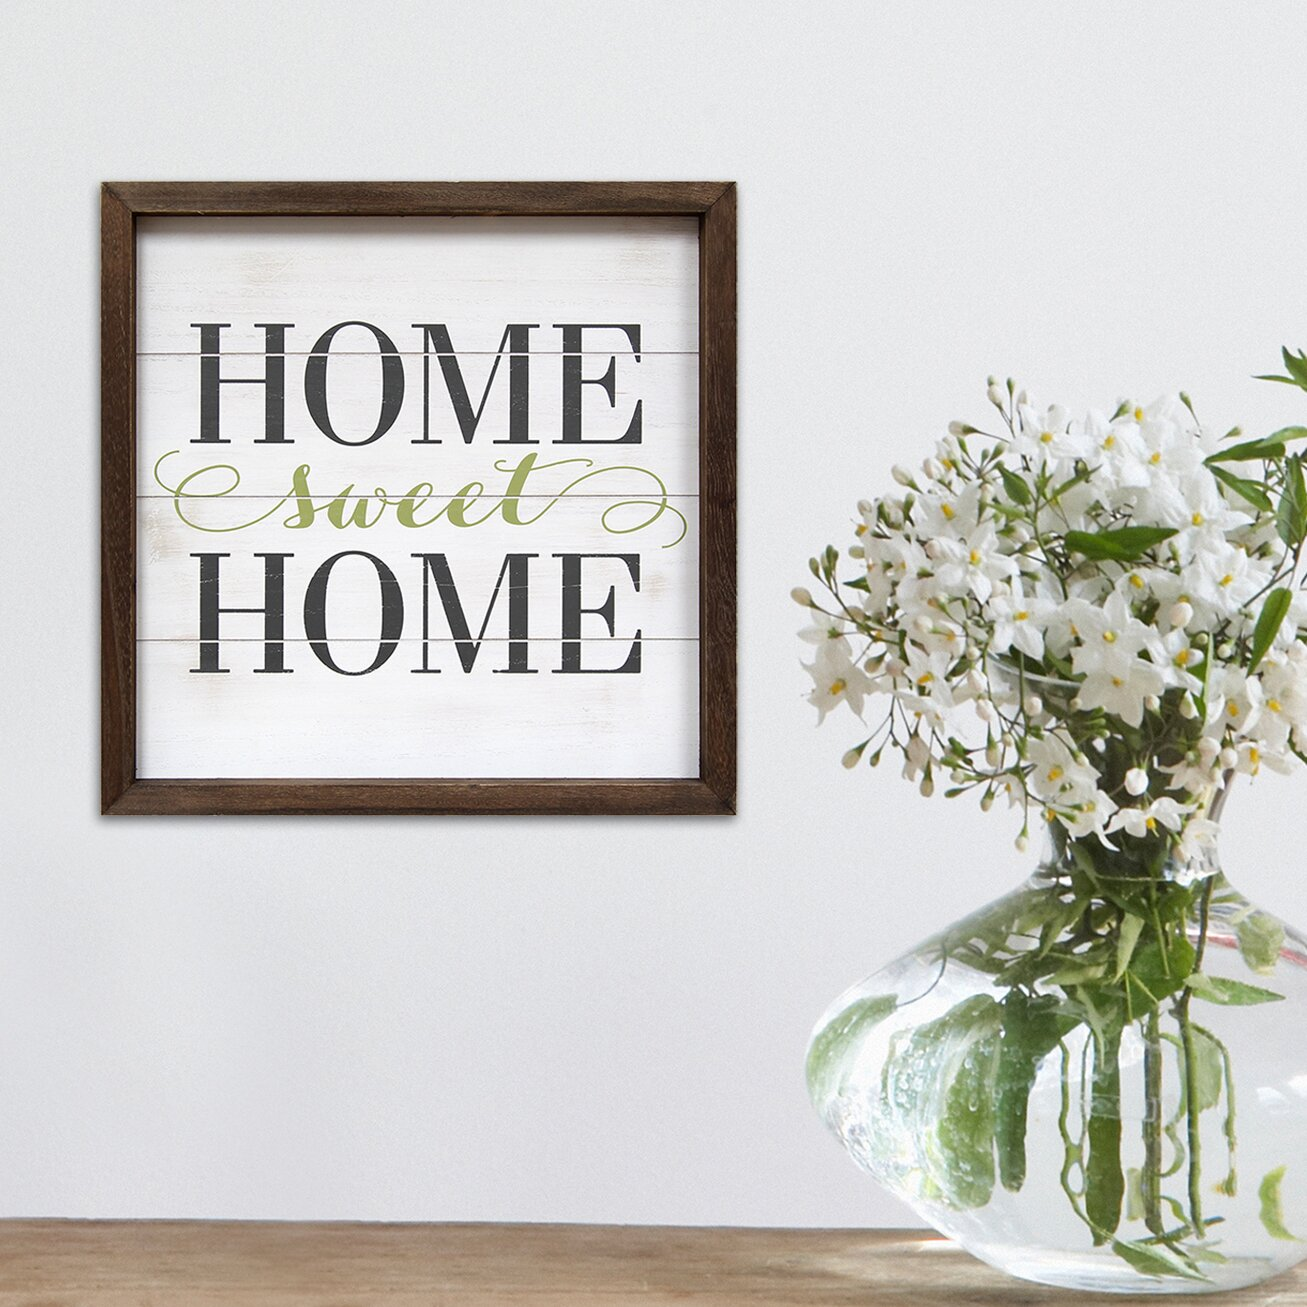 Stratton Home Decor Home Sweet Home Framed Textual Art Wayfair